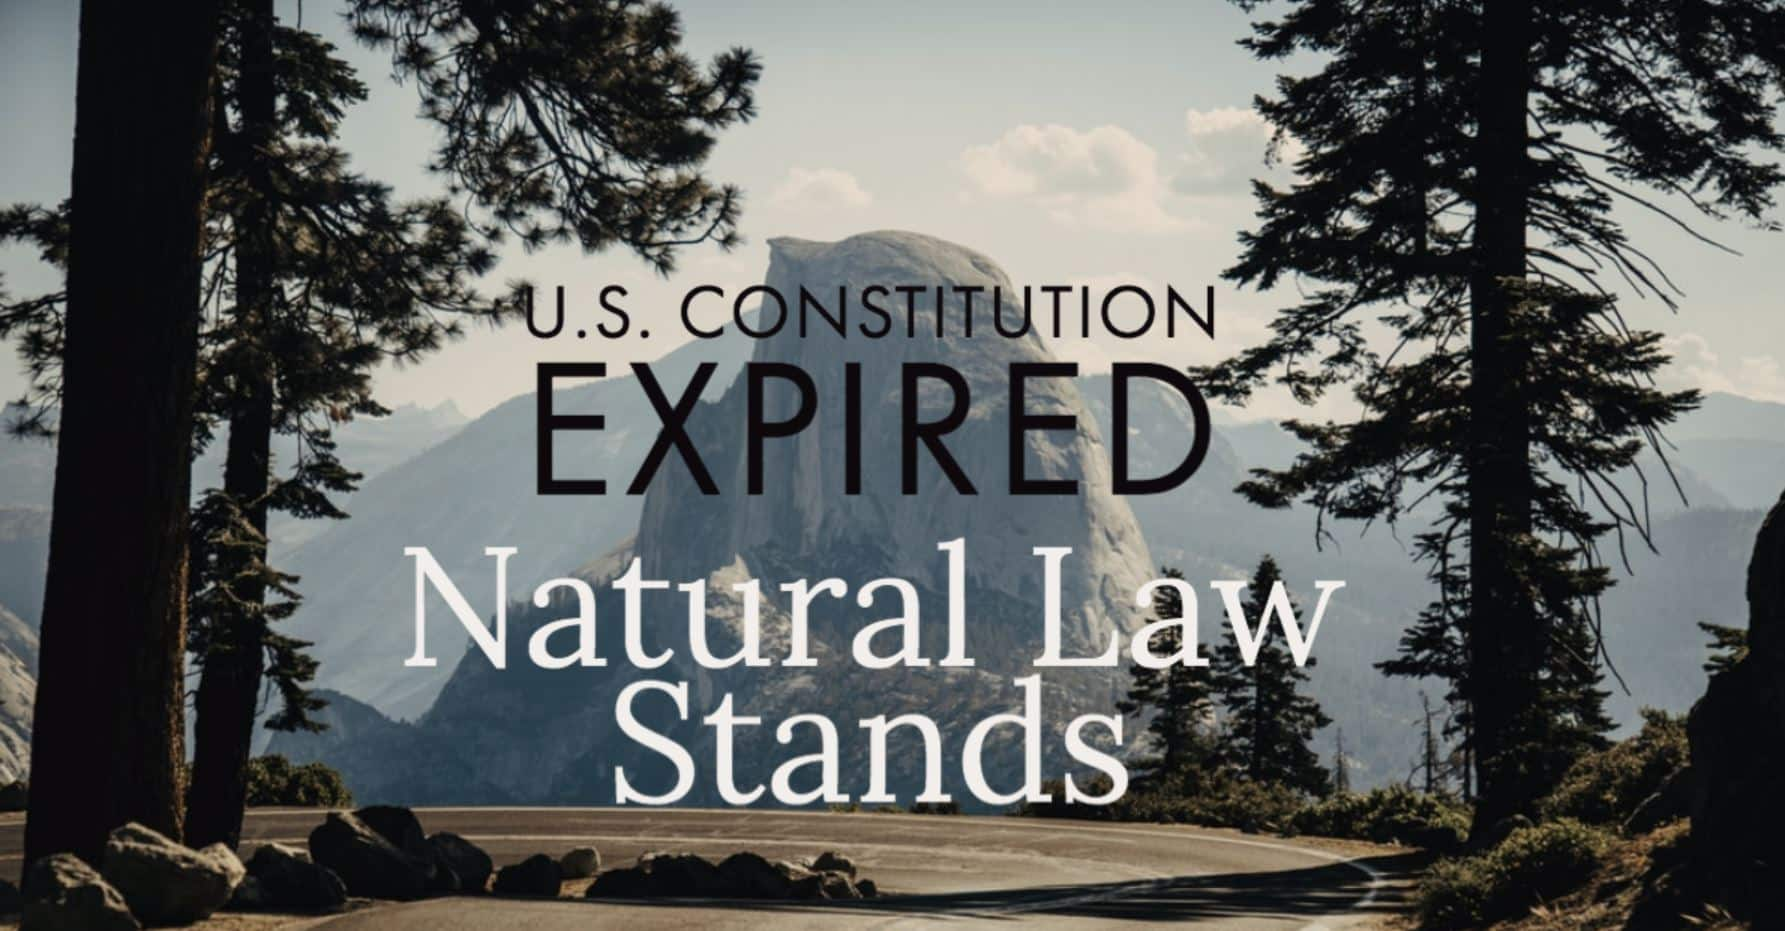 U.S. Constitution Expired. California Exemptions Revoked. Natural Law Stands. 1